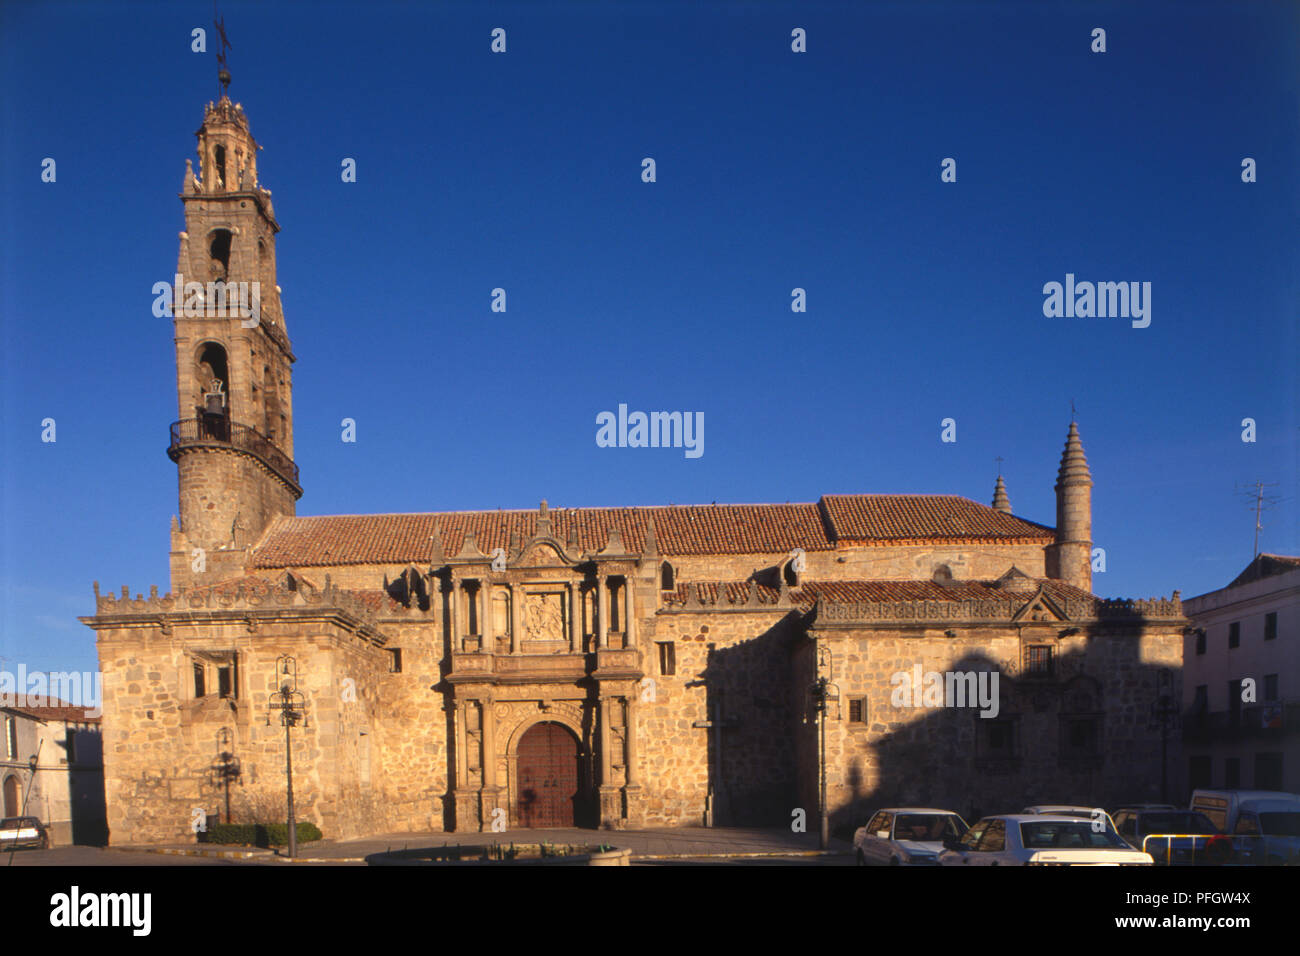 Spain, Andalusia, fifteenth century stone church, Hinojosa del Duque. - Stock Image